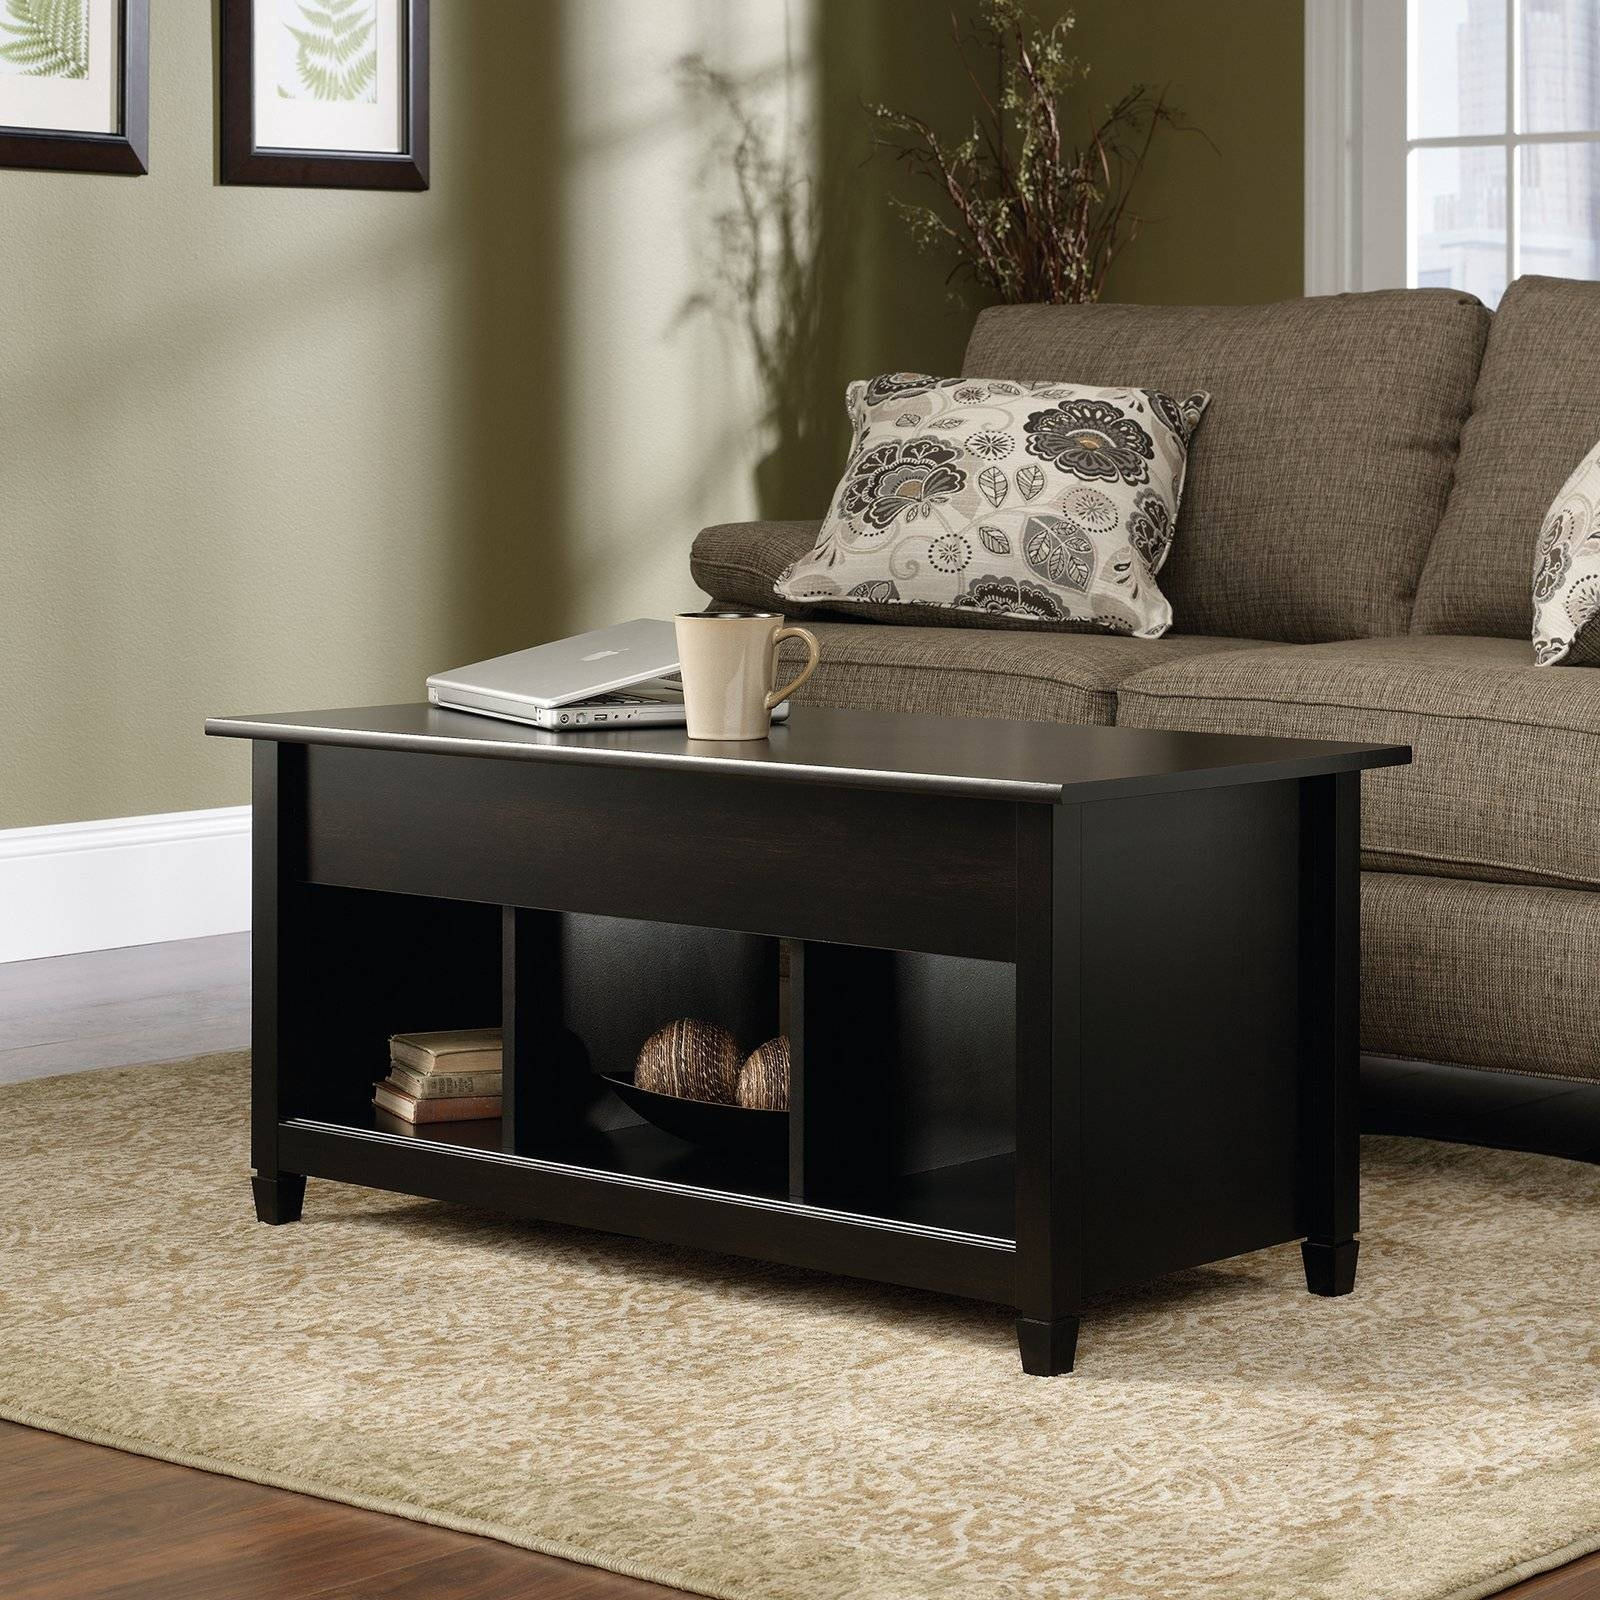 Turner Lift Top Coffee Table - Espresso | Hayneedle pertaining to Lift Top Coffee Tables With Storage (Image 29 of 30)